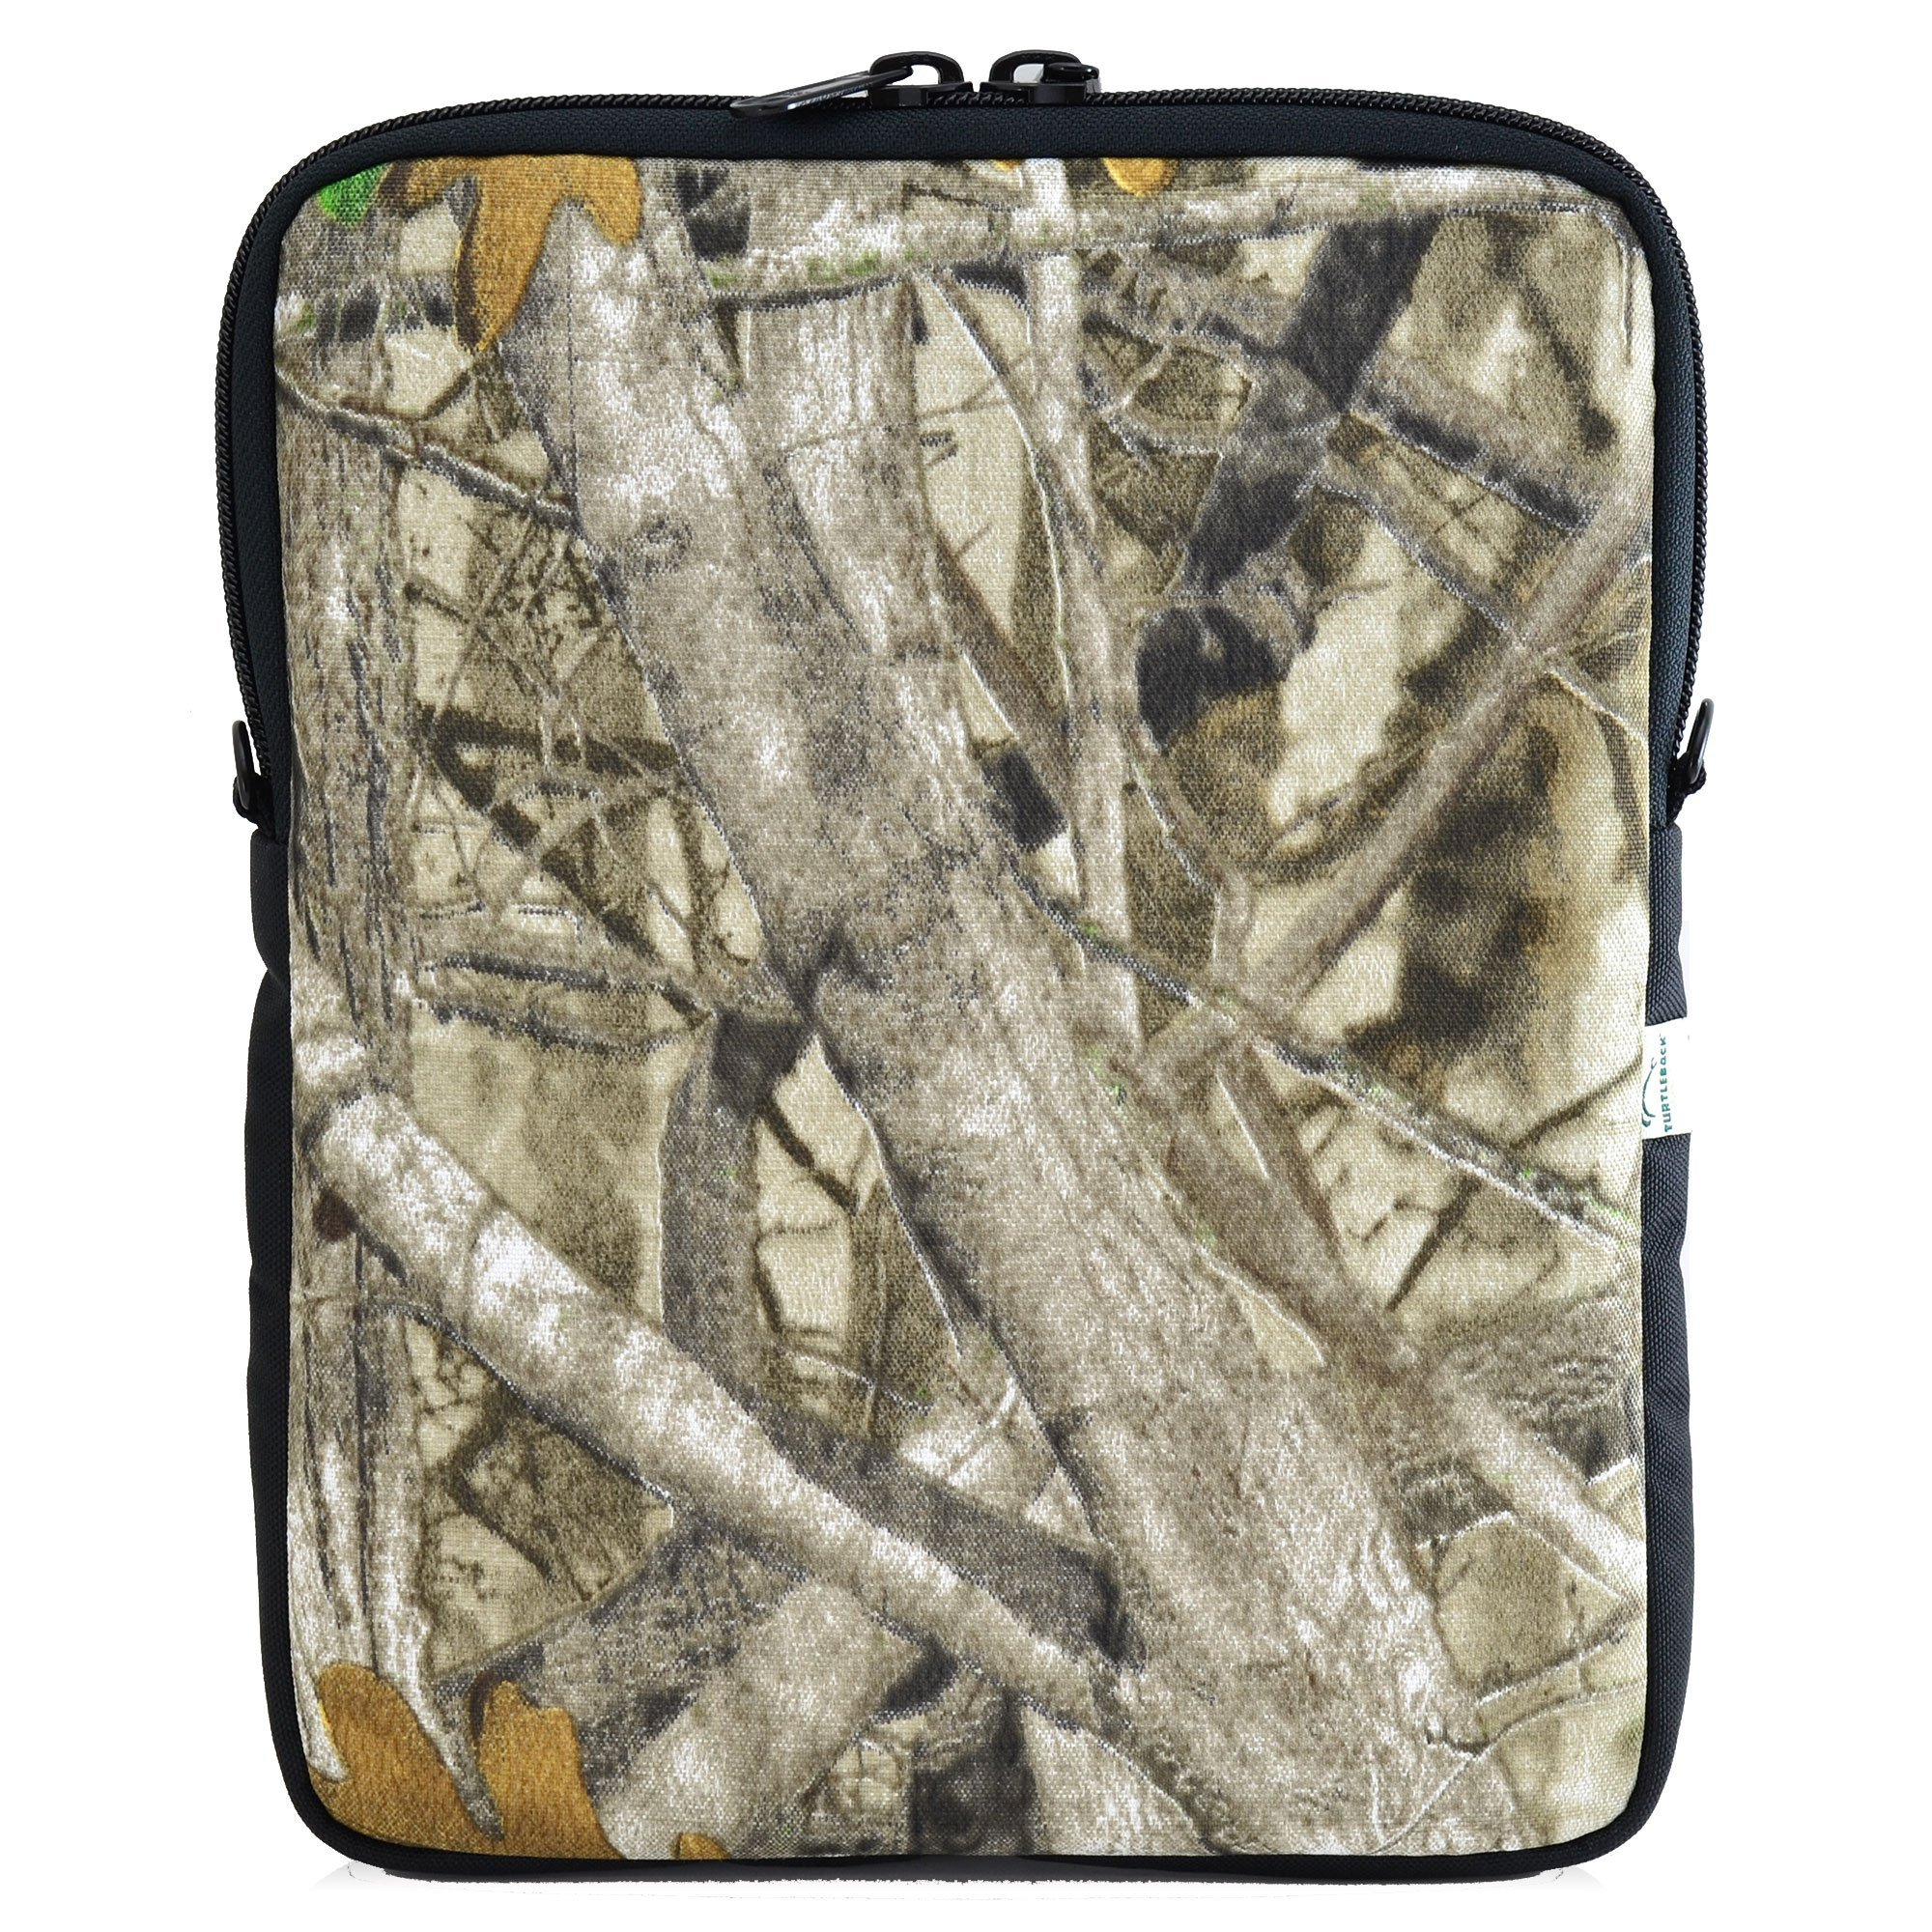 Turtleback Essential Gear for iPad Pro 10.5'' Tablet & Phone Pouch Carry Bag with Removable Shoulder Strap (Camouflage), Made in USA